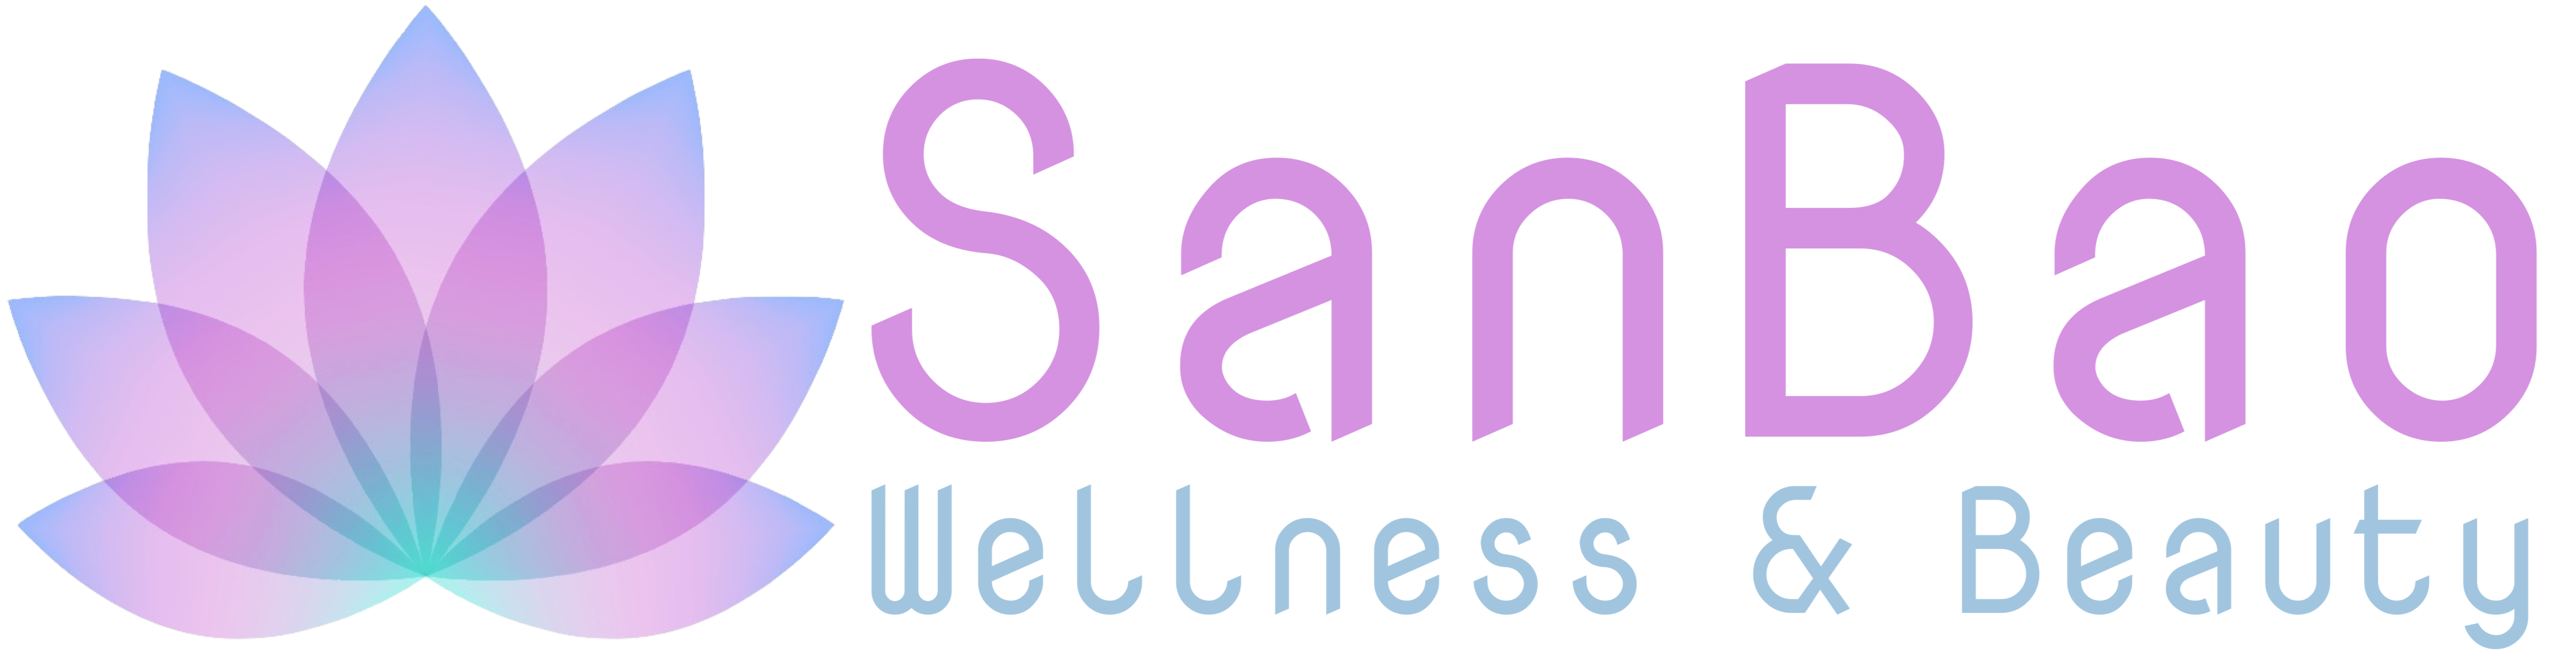 San Bao Wellness & Beauty